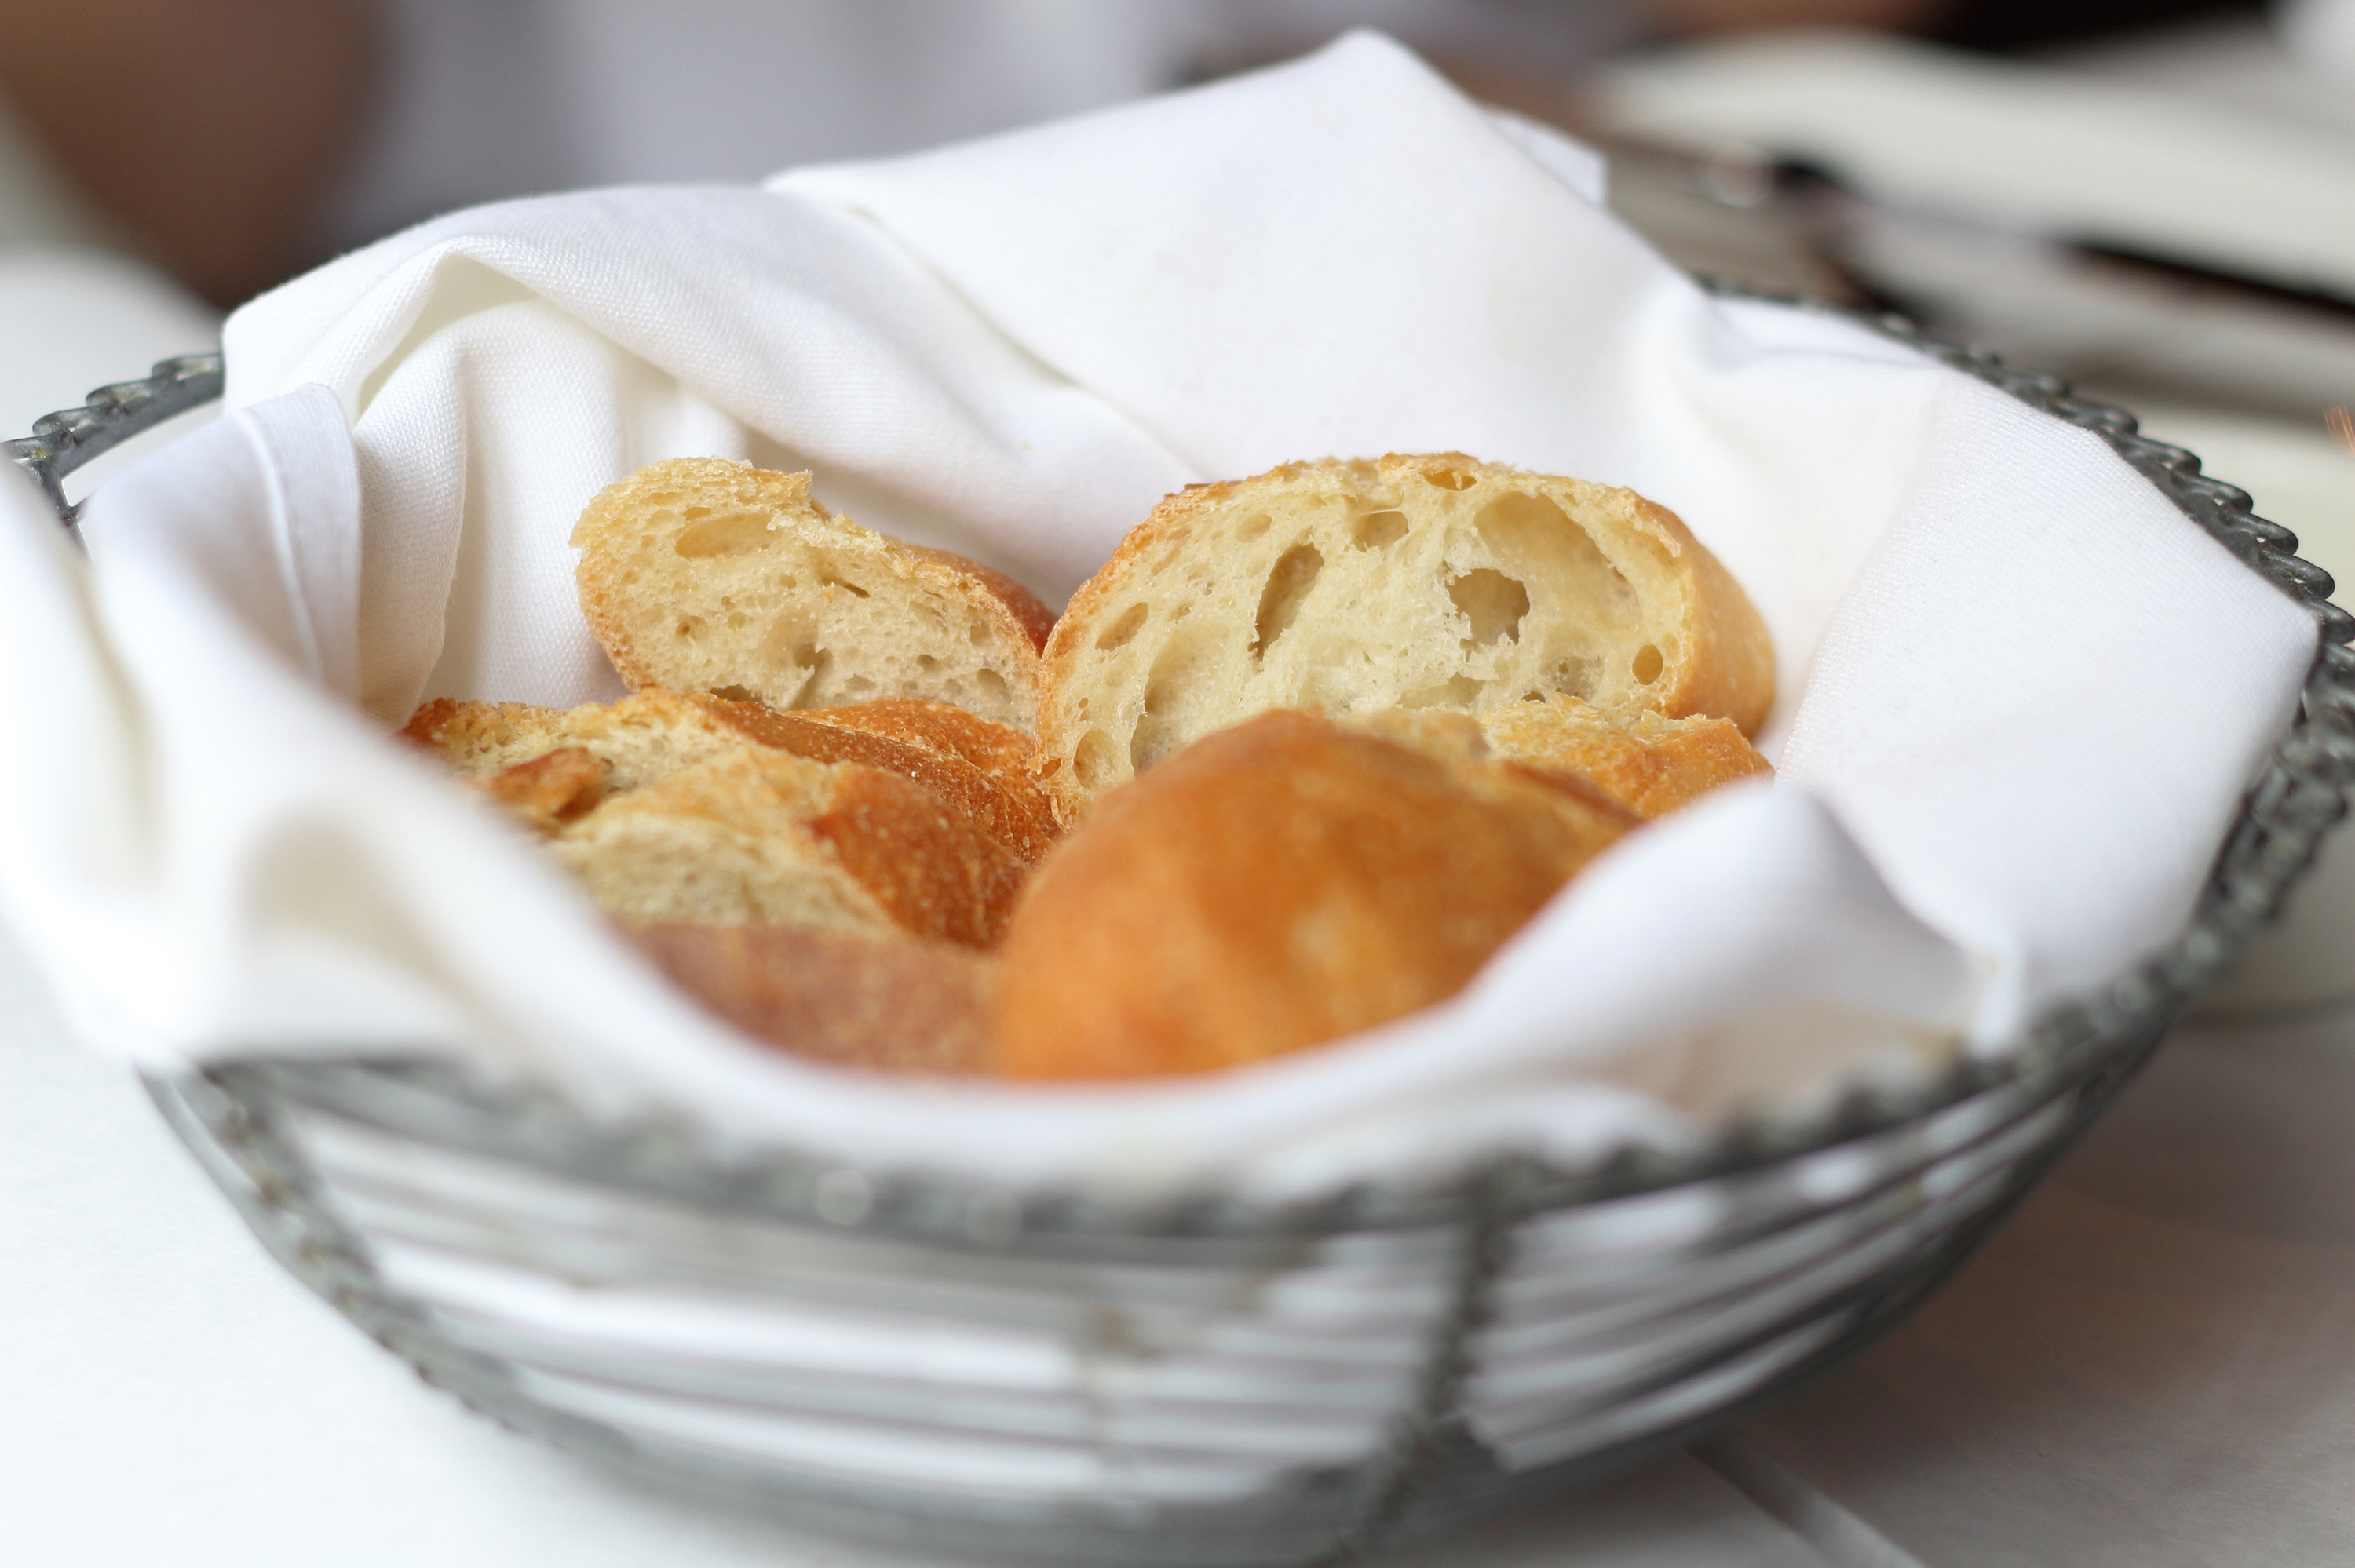 Curb Your Appetite: Save Bread For The End Of The Meal